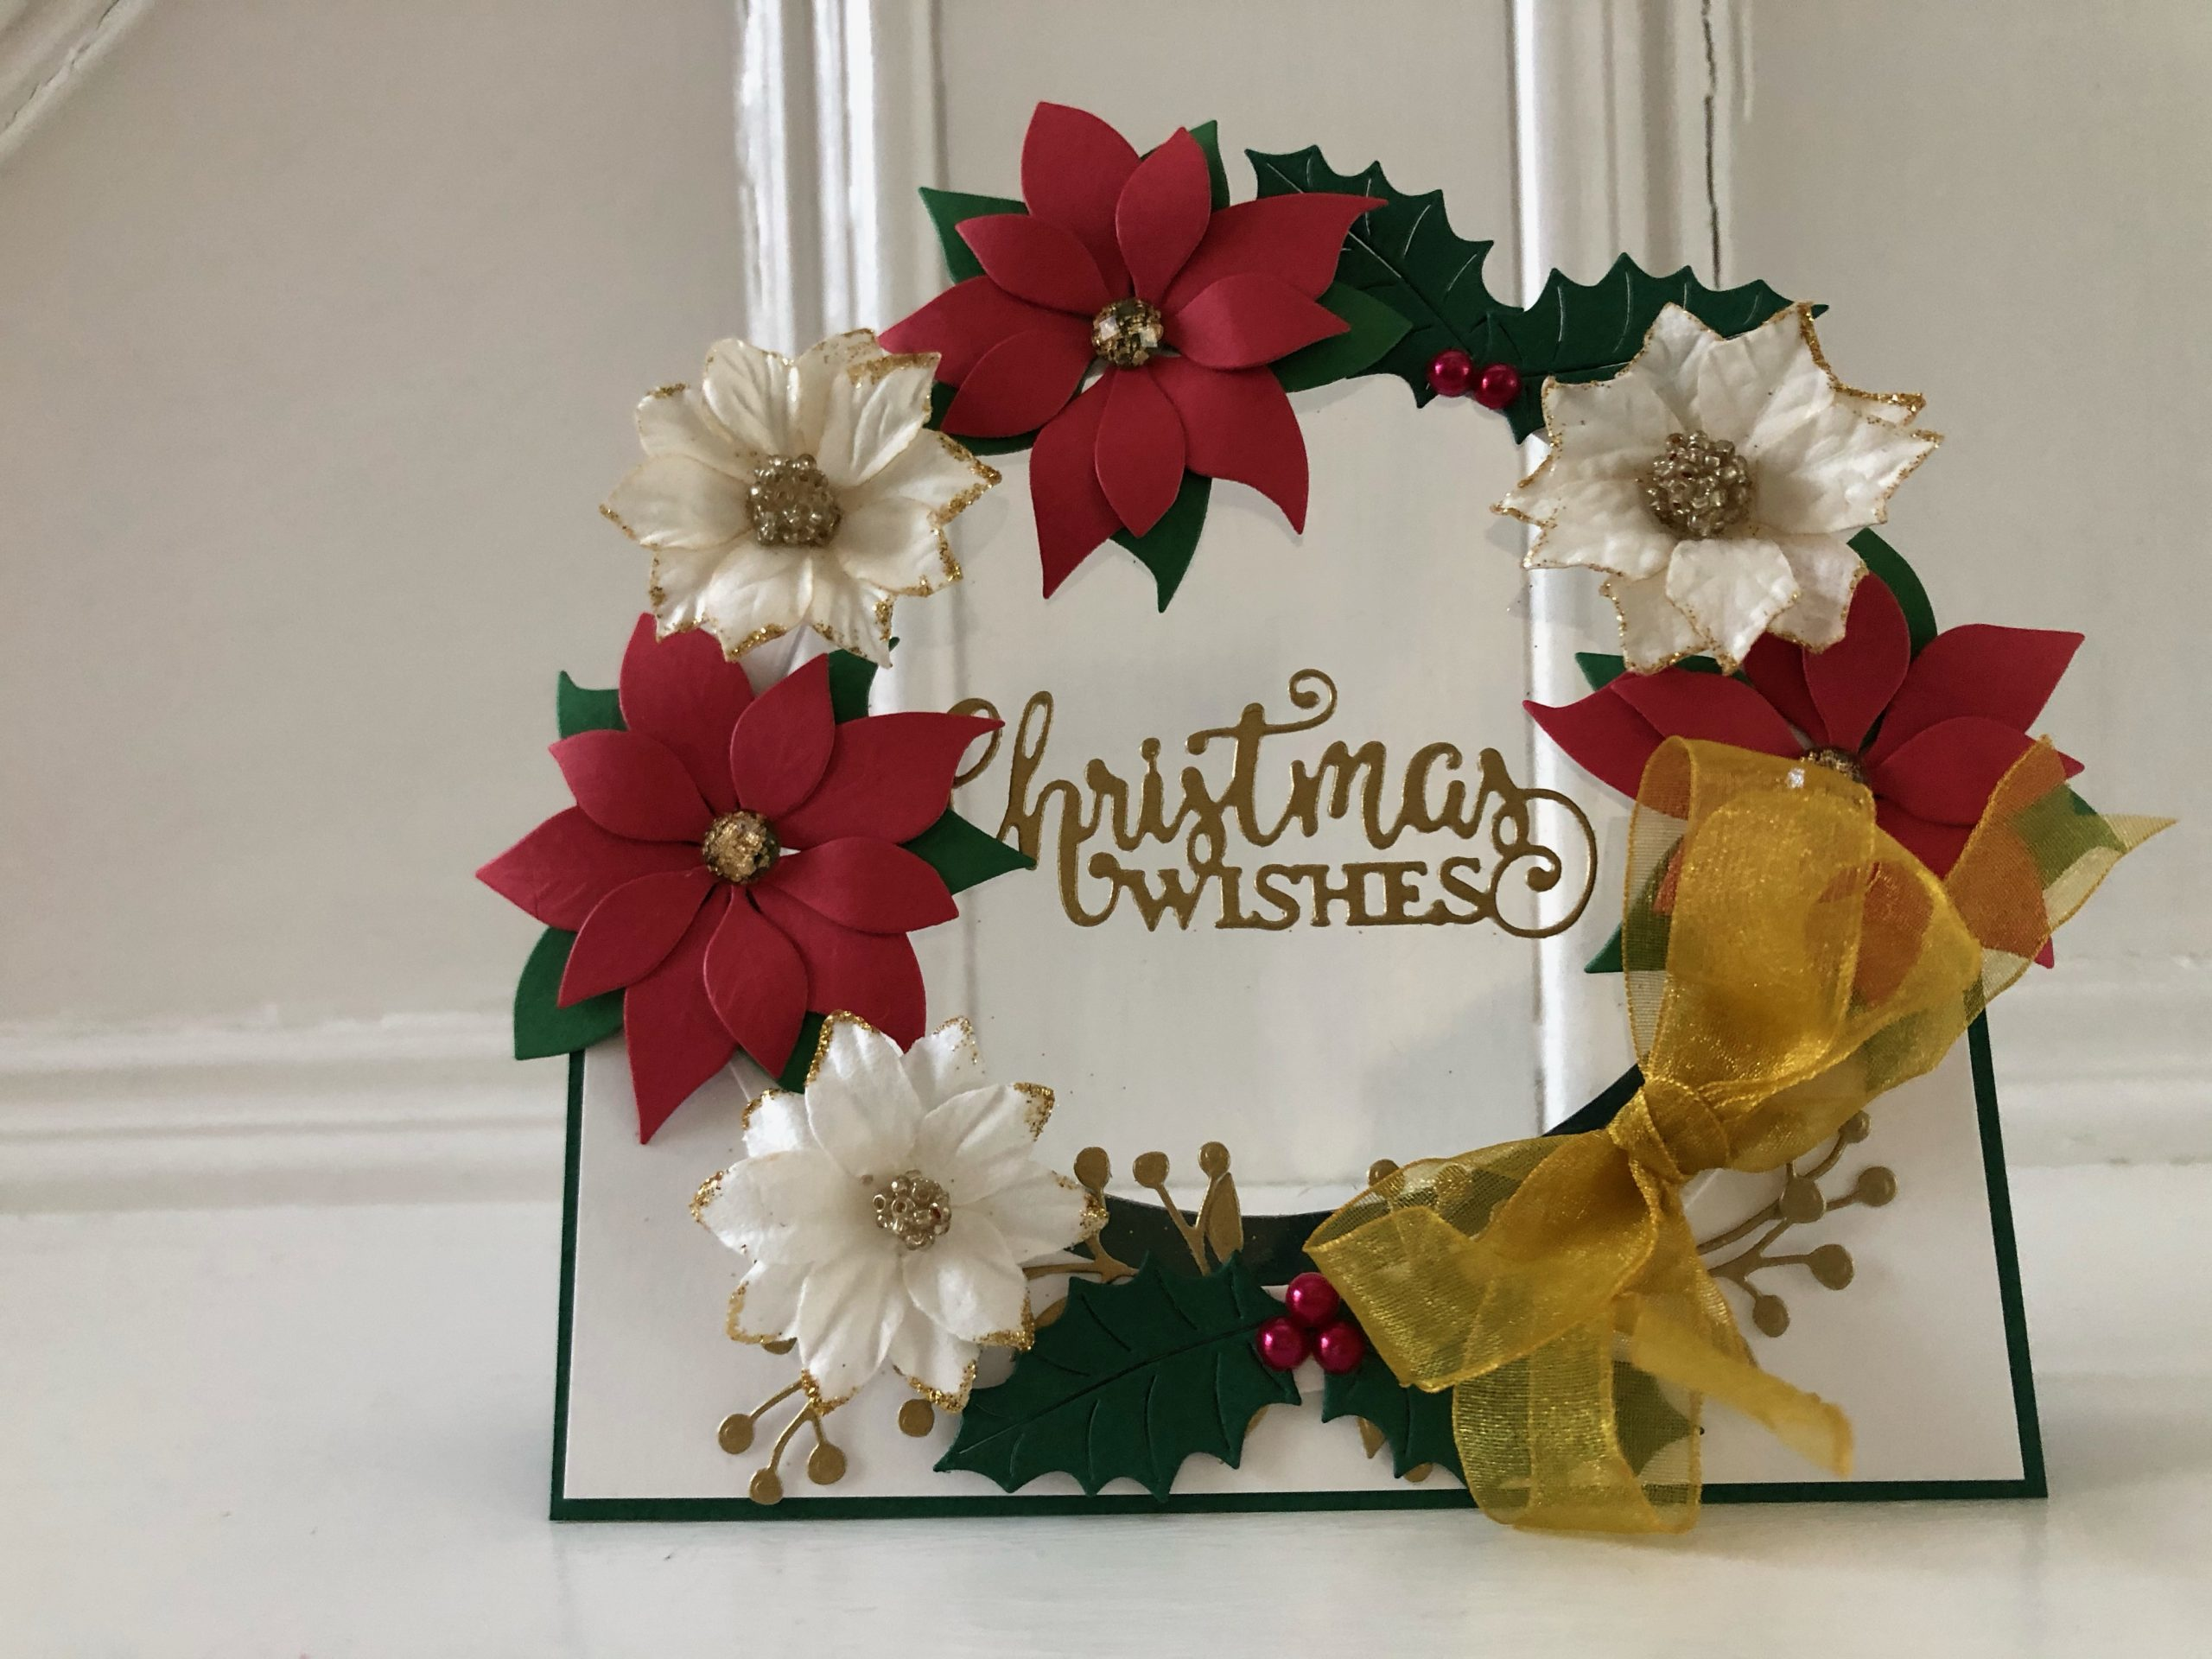 hand made christmas card with flower and holly wreath